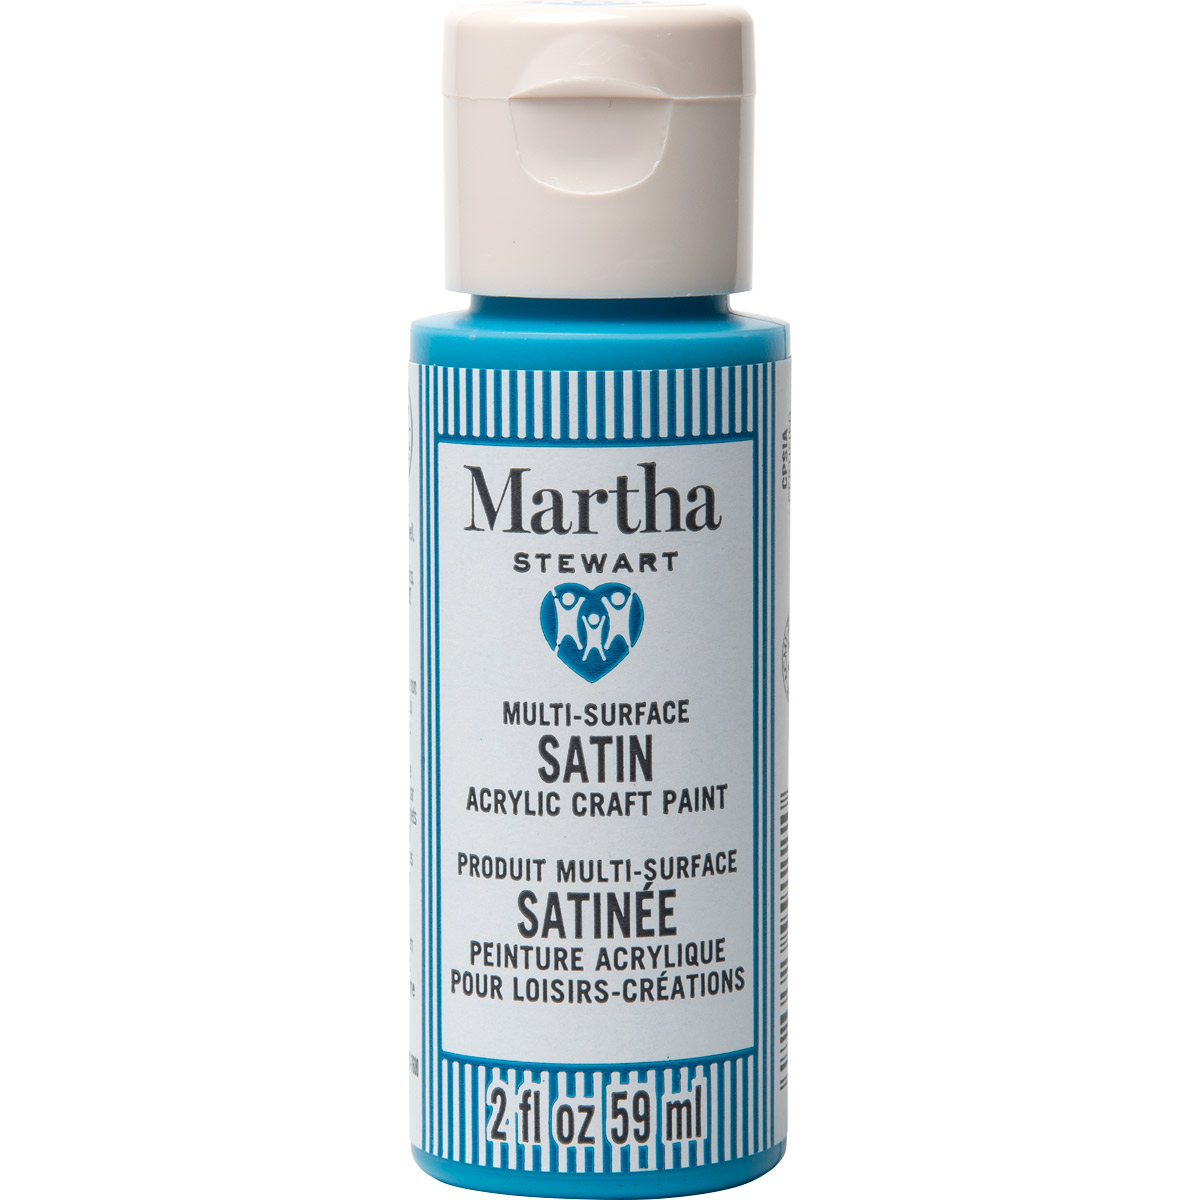 Martha Stewart® 2oz Multi-Surface Satin Acrylic Craft Paint - Coastal